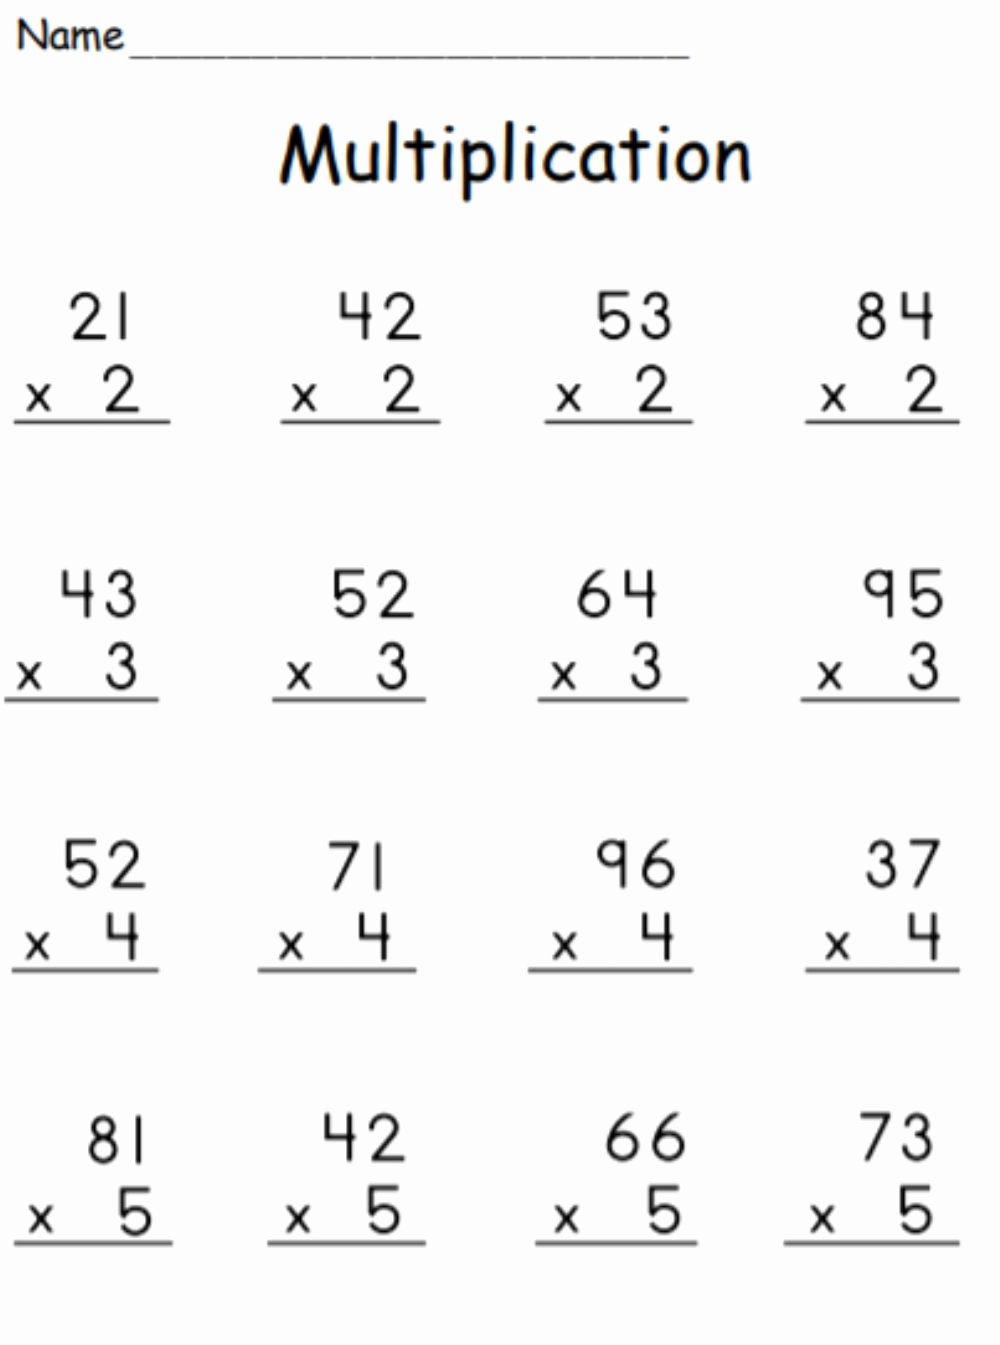 Multiplication Worksheets 3 Digit by 1 Digit Awesome Multiplication 2 Digit by 1 Digit with Regrouping